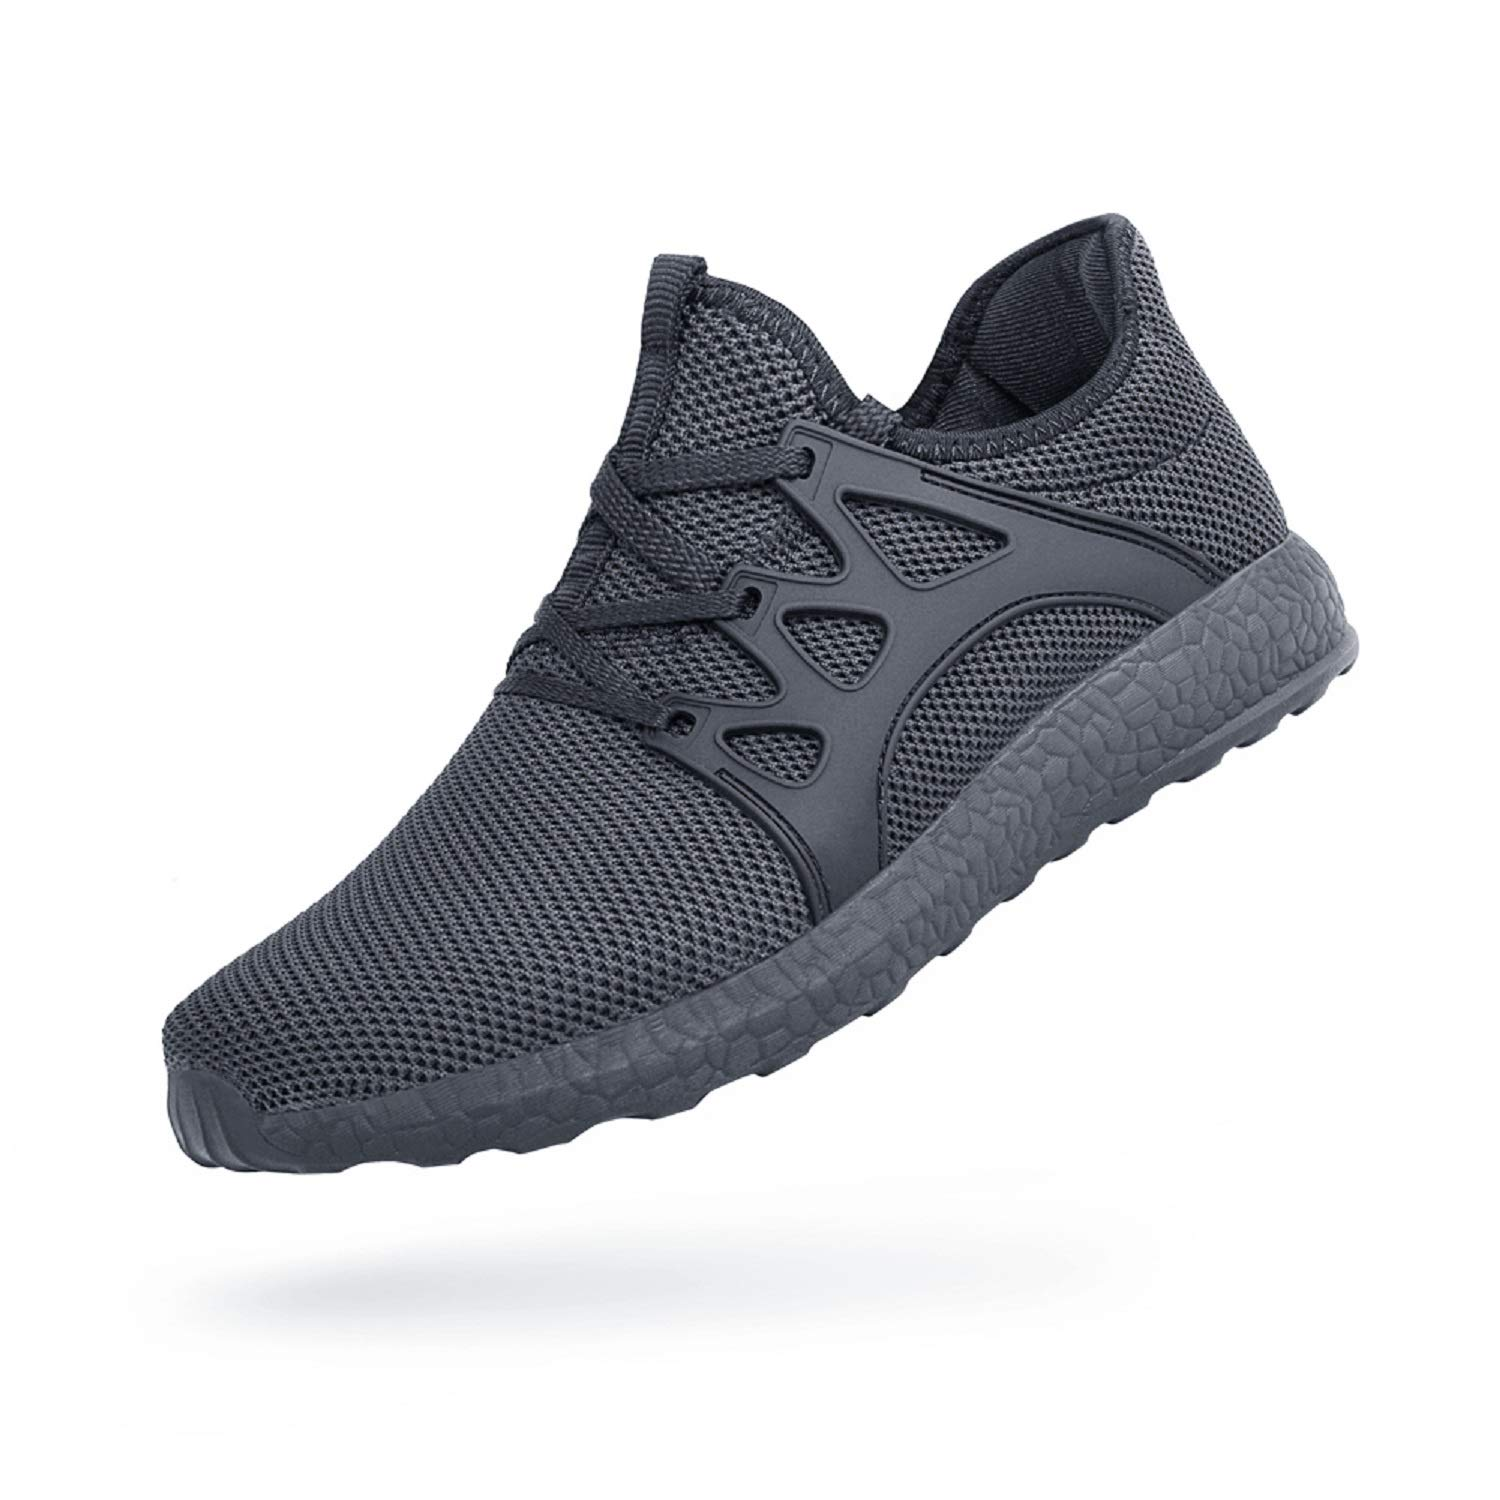 QANSI Men's Sneakers Mesh Ultra Lightweight Breathable Athletic Running Walking Gym Shoes Gray Size 9.5